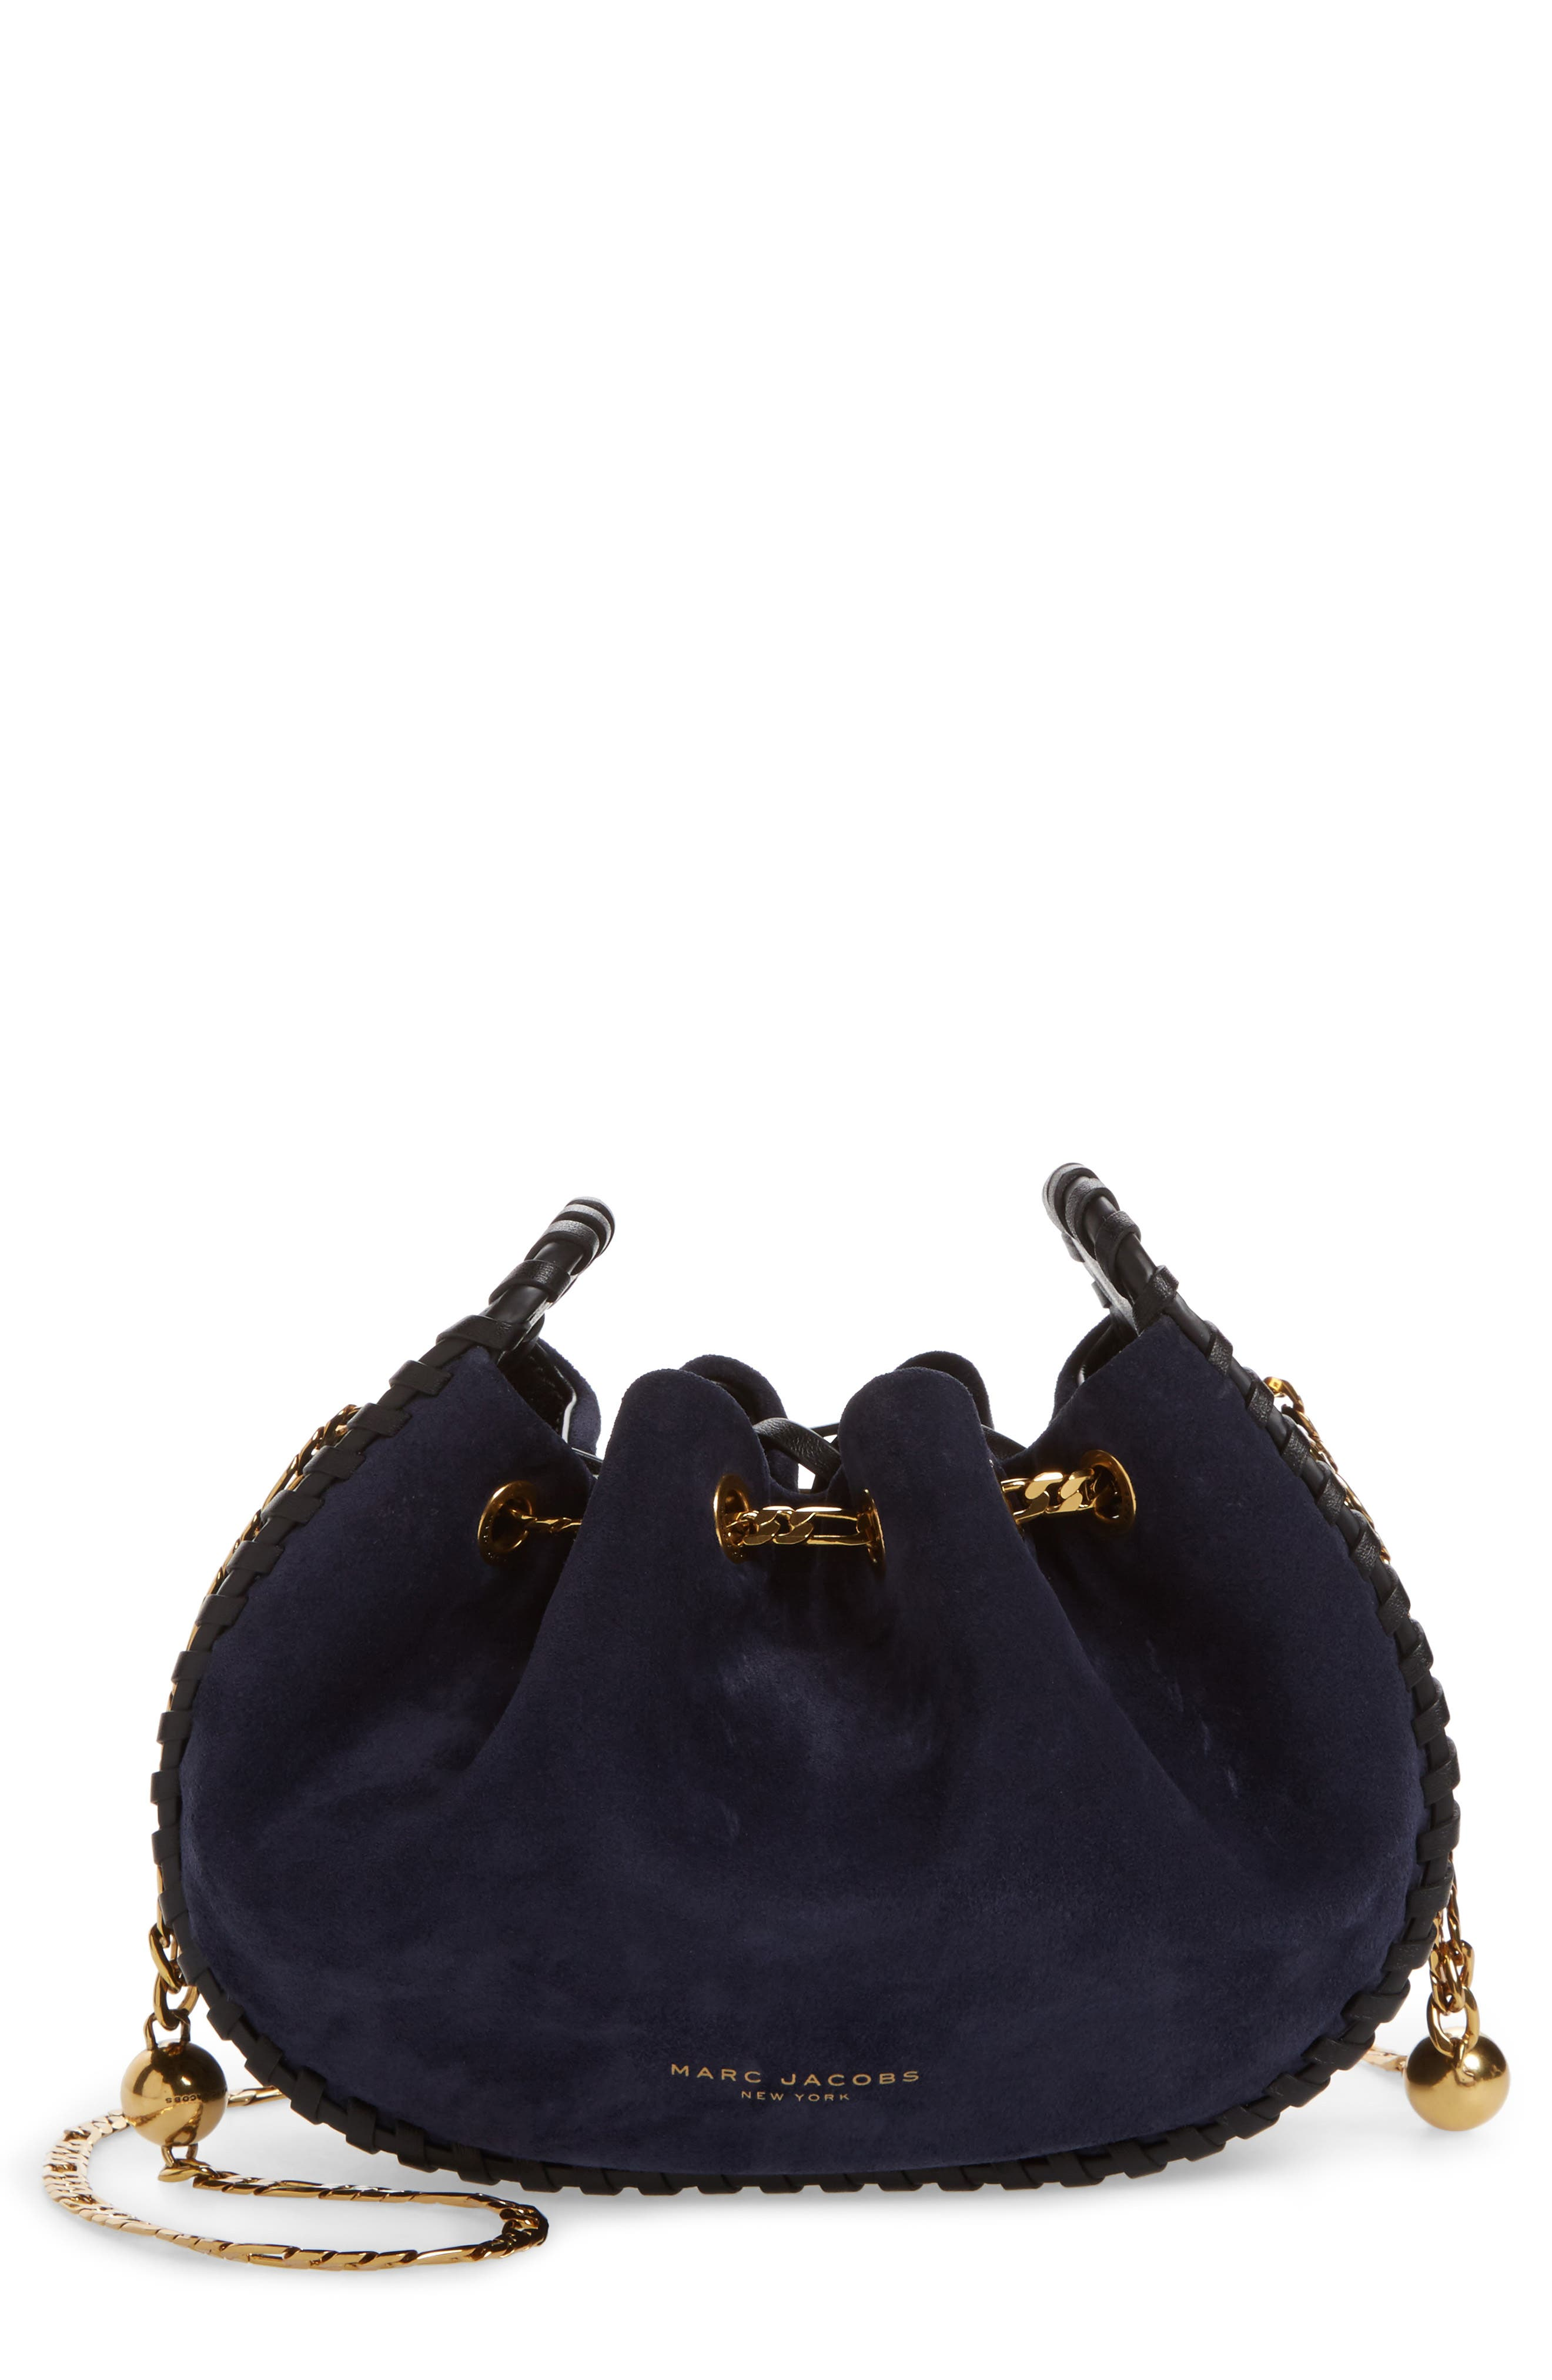 Alternate Image 1 Selected - MARC JACOBS Sway Party Suede Crossbody Bag